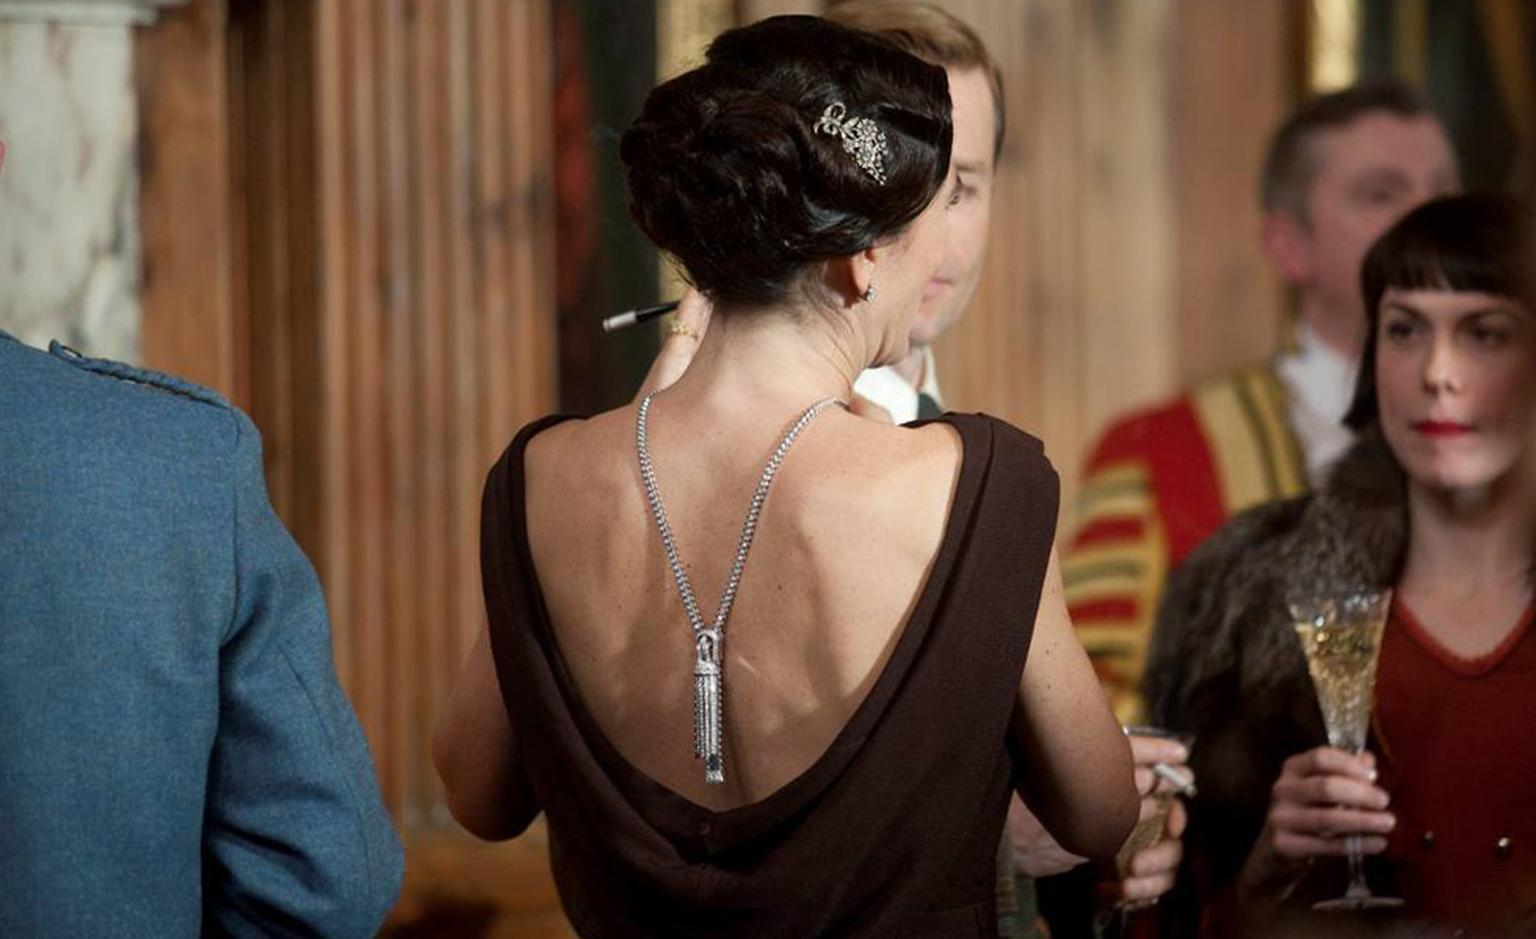 Eve Best, as the Duchess of Windsor, wearing Van Cleef & Arpels Zip Necklace in The King's Speech